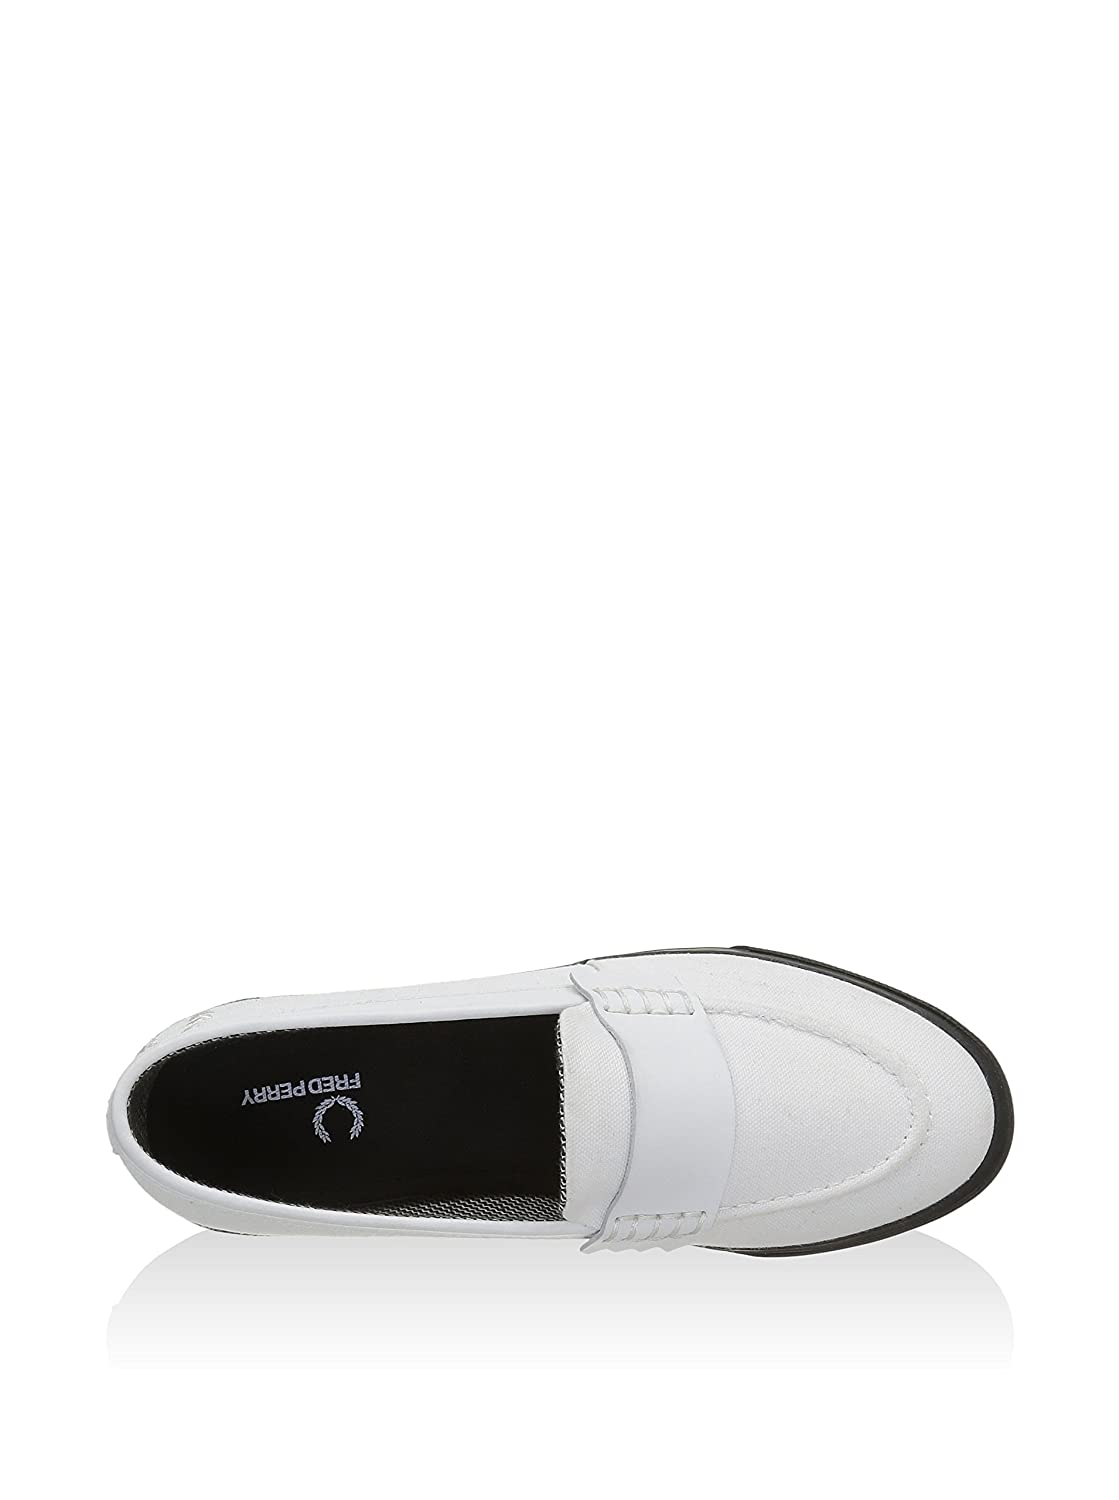 Fred Perry Mocasines Clásicos Fp Fenton/Blanco EU 37 (UK 4): Amazon.es: Zapatos y complementos